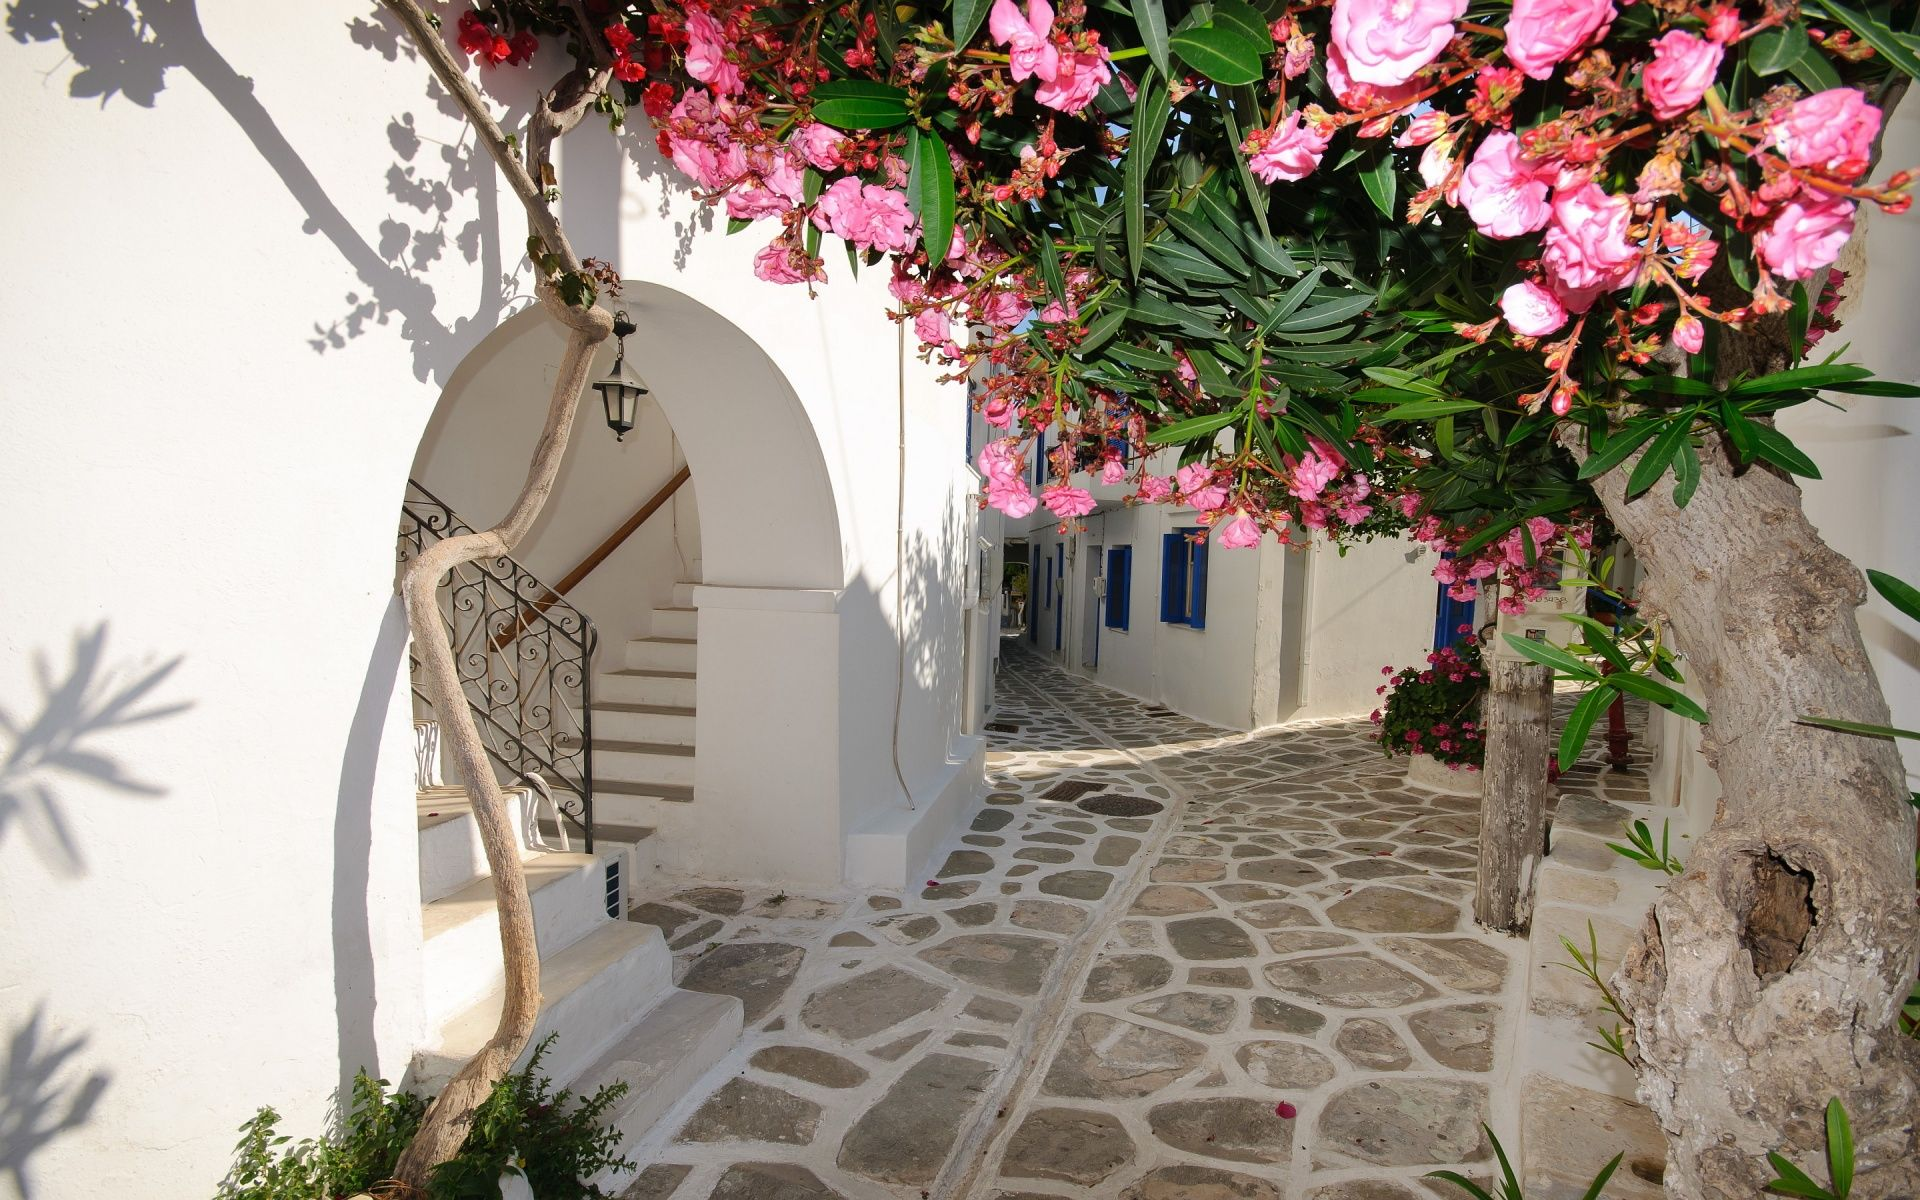 Greece village streets | Piazza's, Courtyards, Streets ...